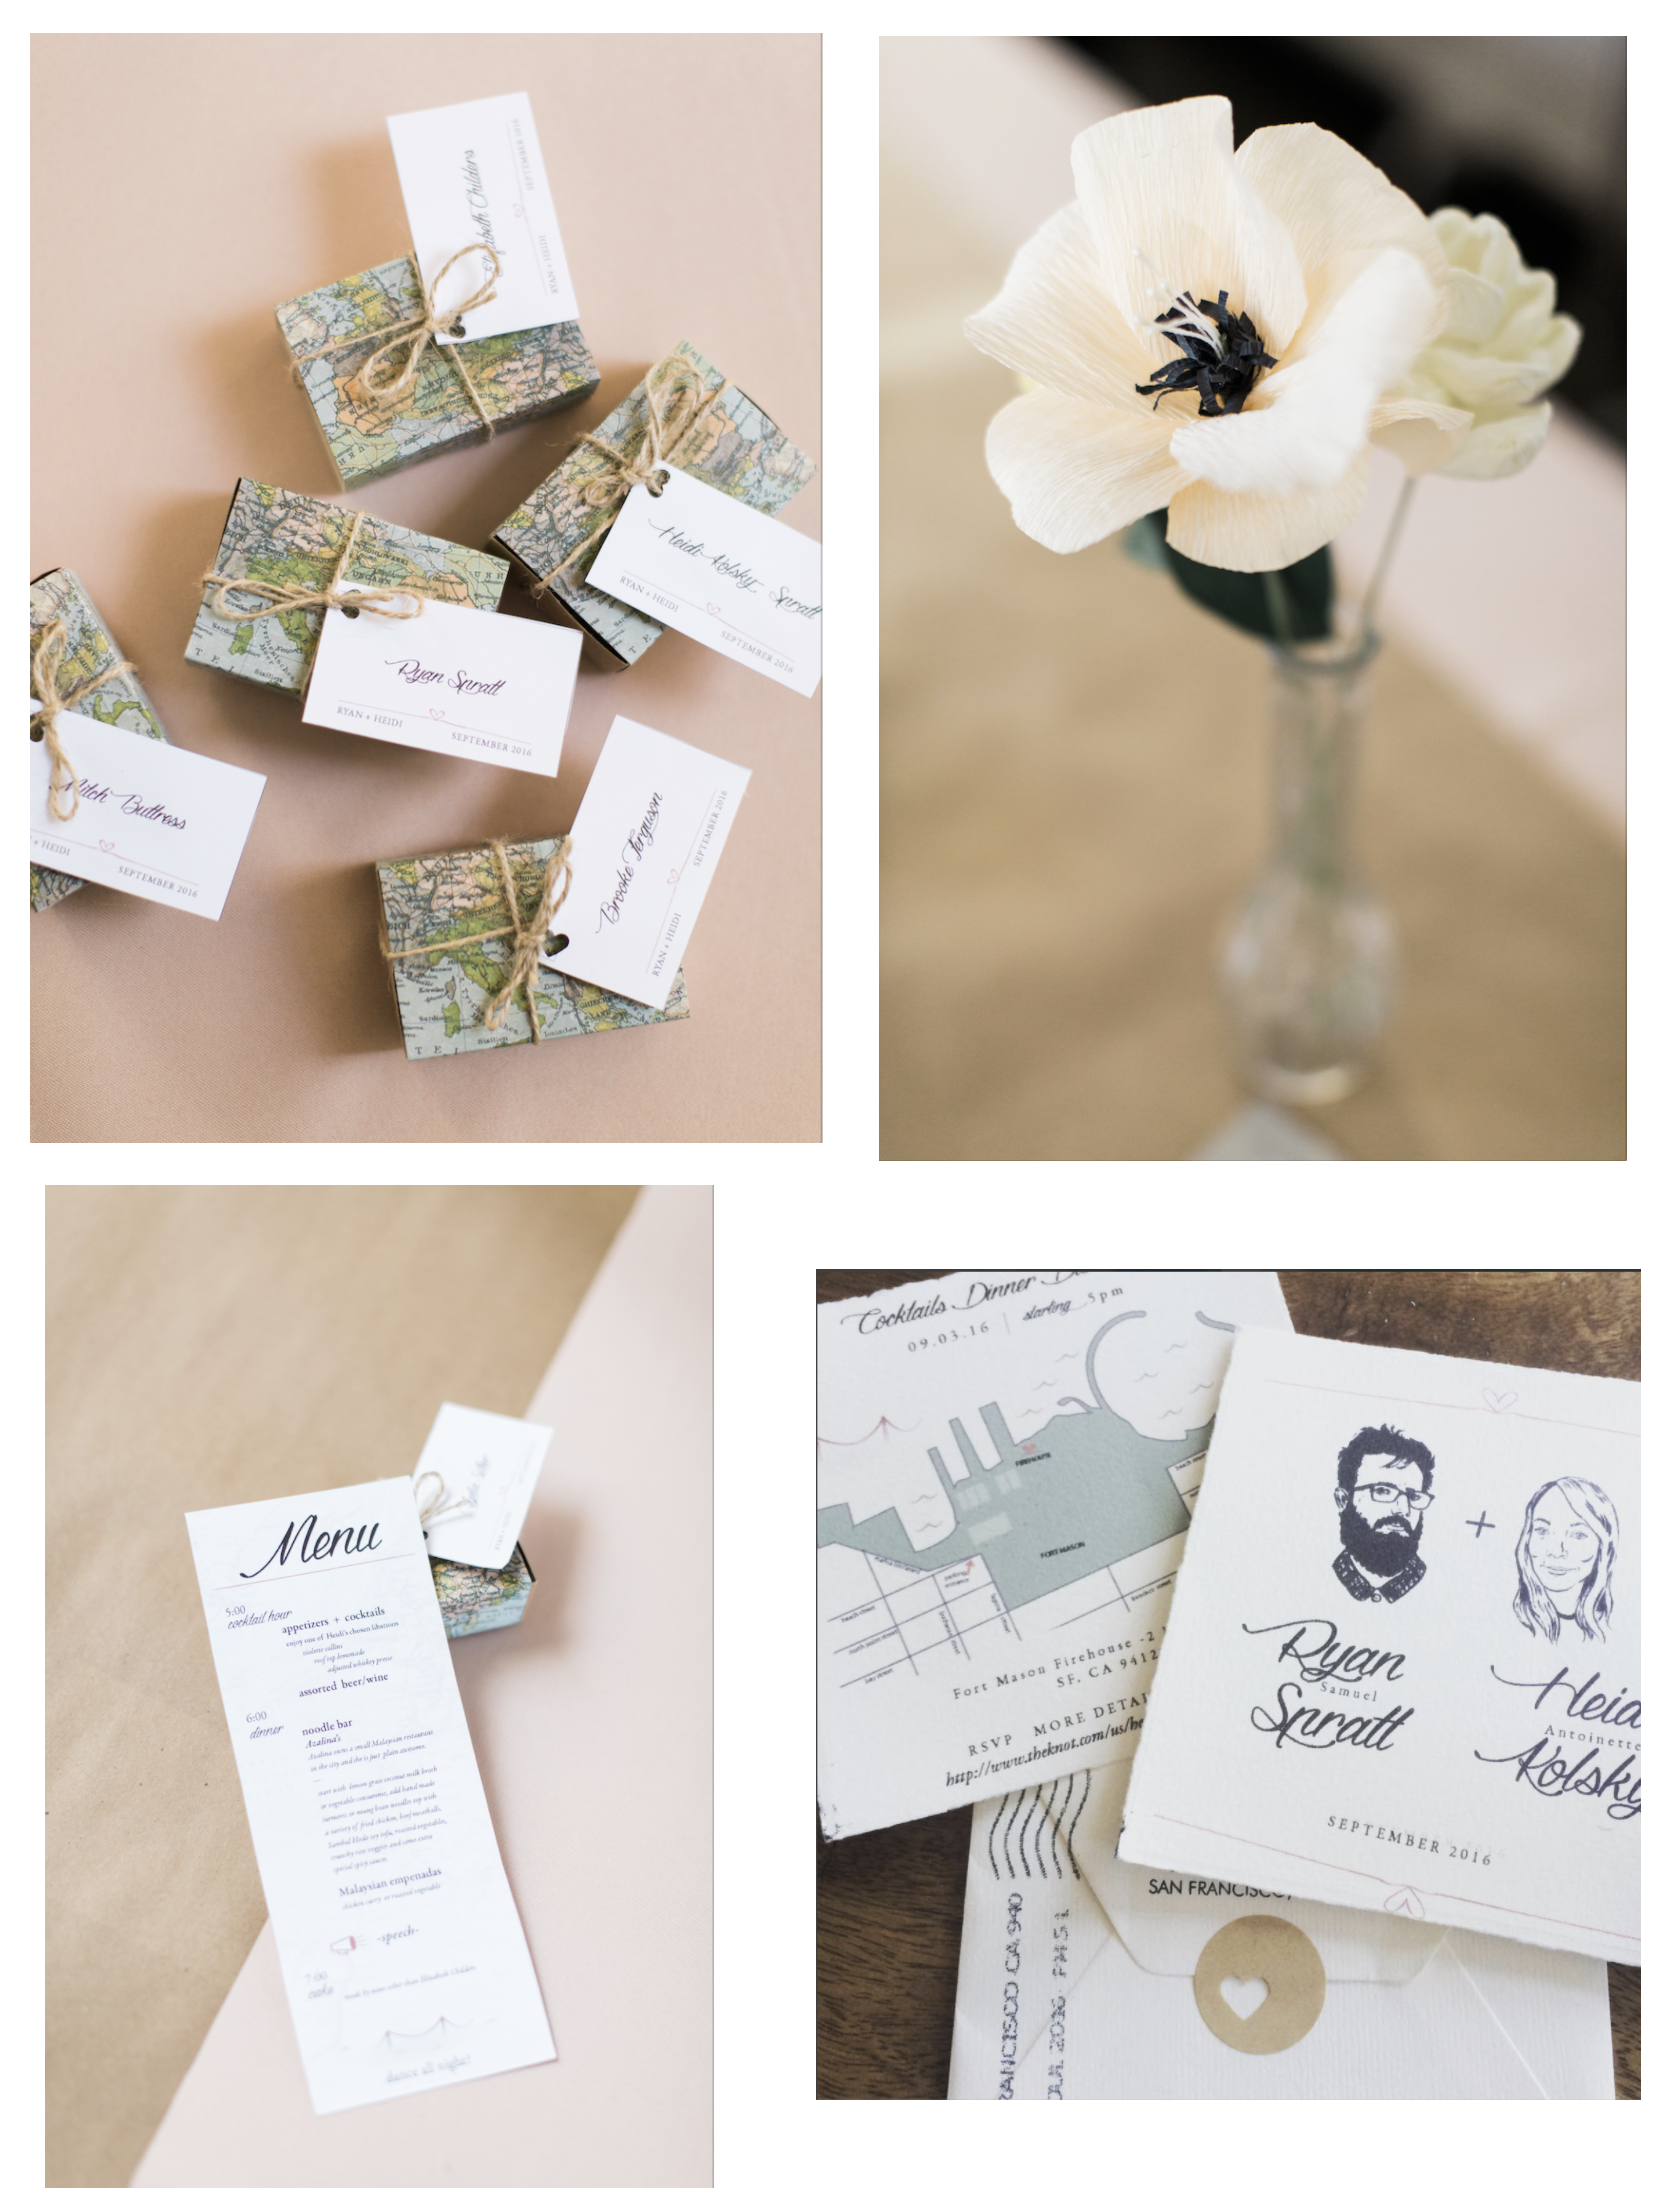 ... A Very Personal Project - invitation, menu and place tag design handmade paper flowers